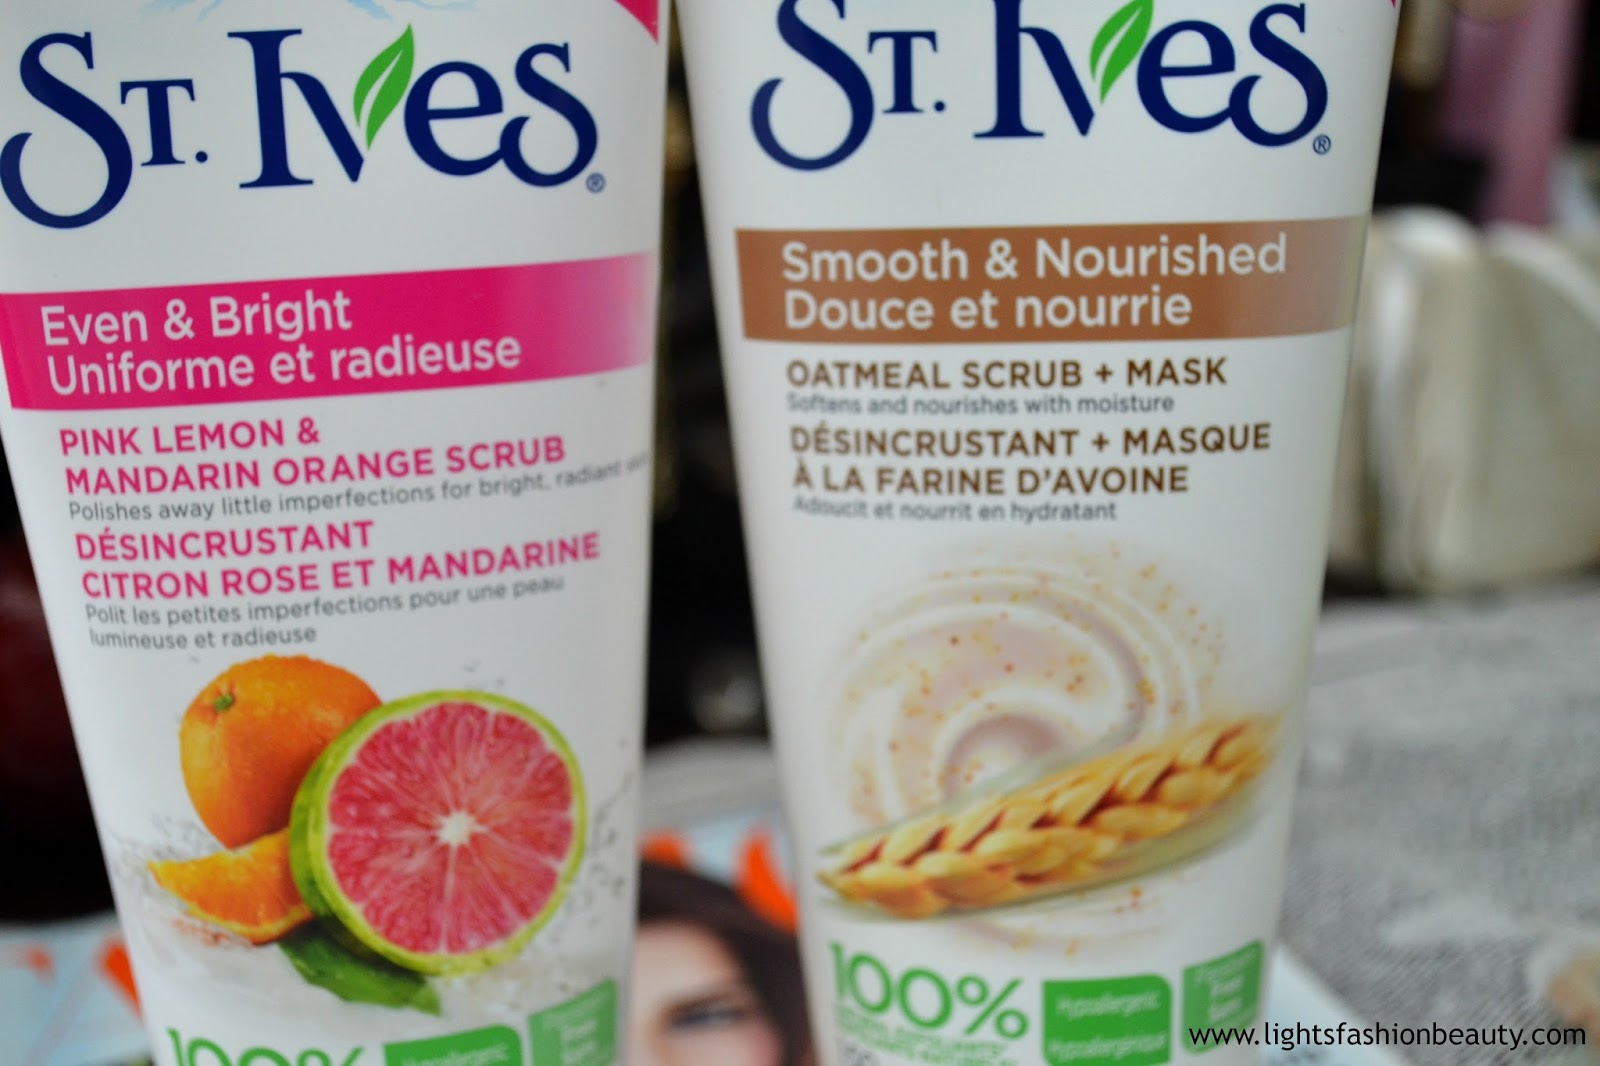 St Yves Scrub, St Yves pink lemon & mandarin orange scrub, St Yves oatmeal scrub and mask,